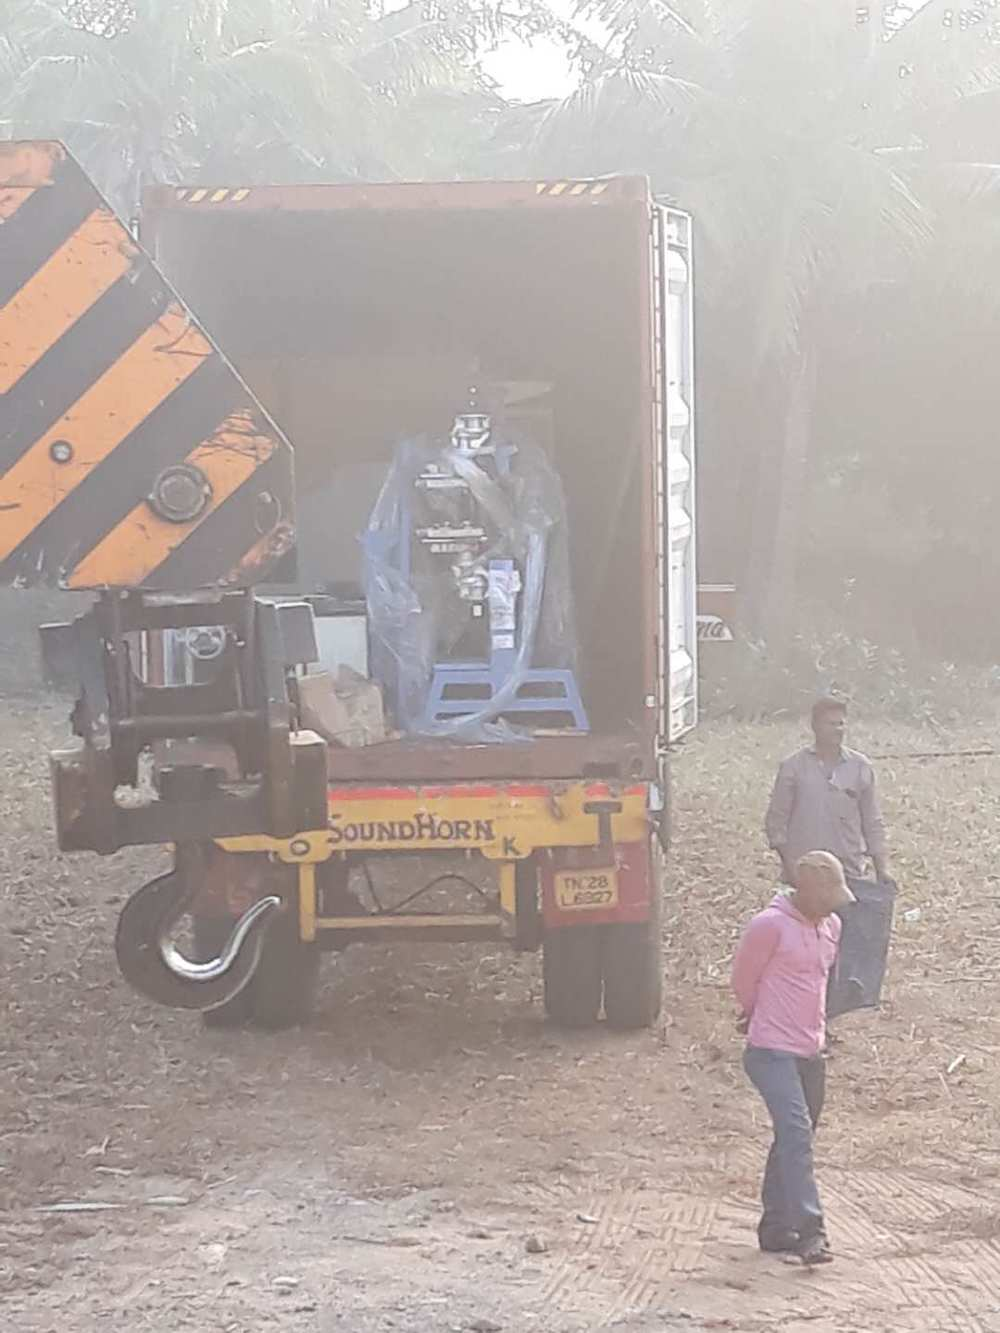 In October 2017 year, a spring machine was sold to customers in India